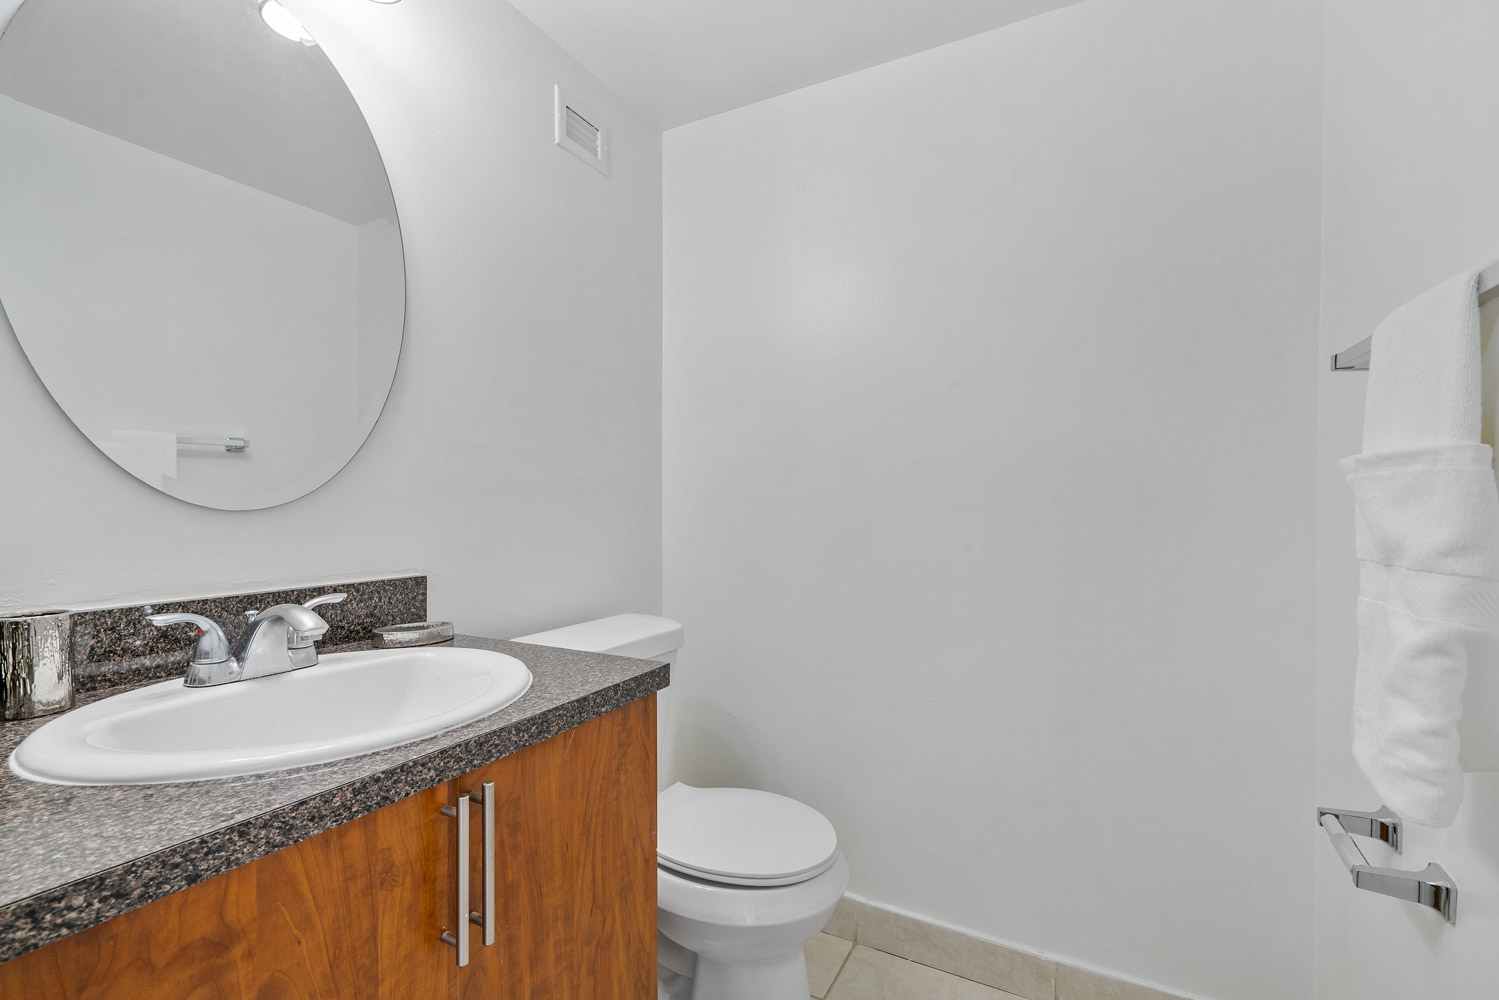 Bathroom Interior  at Grand Island Square Apartments in North Miami Beach, Florida